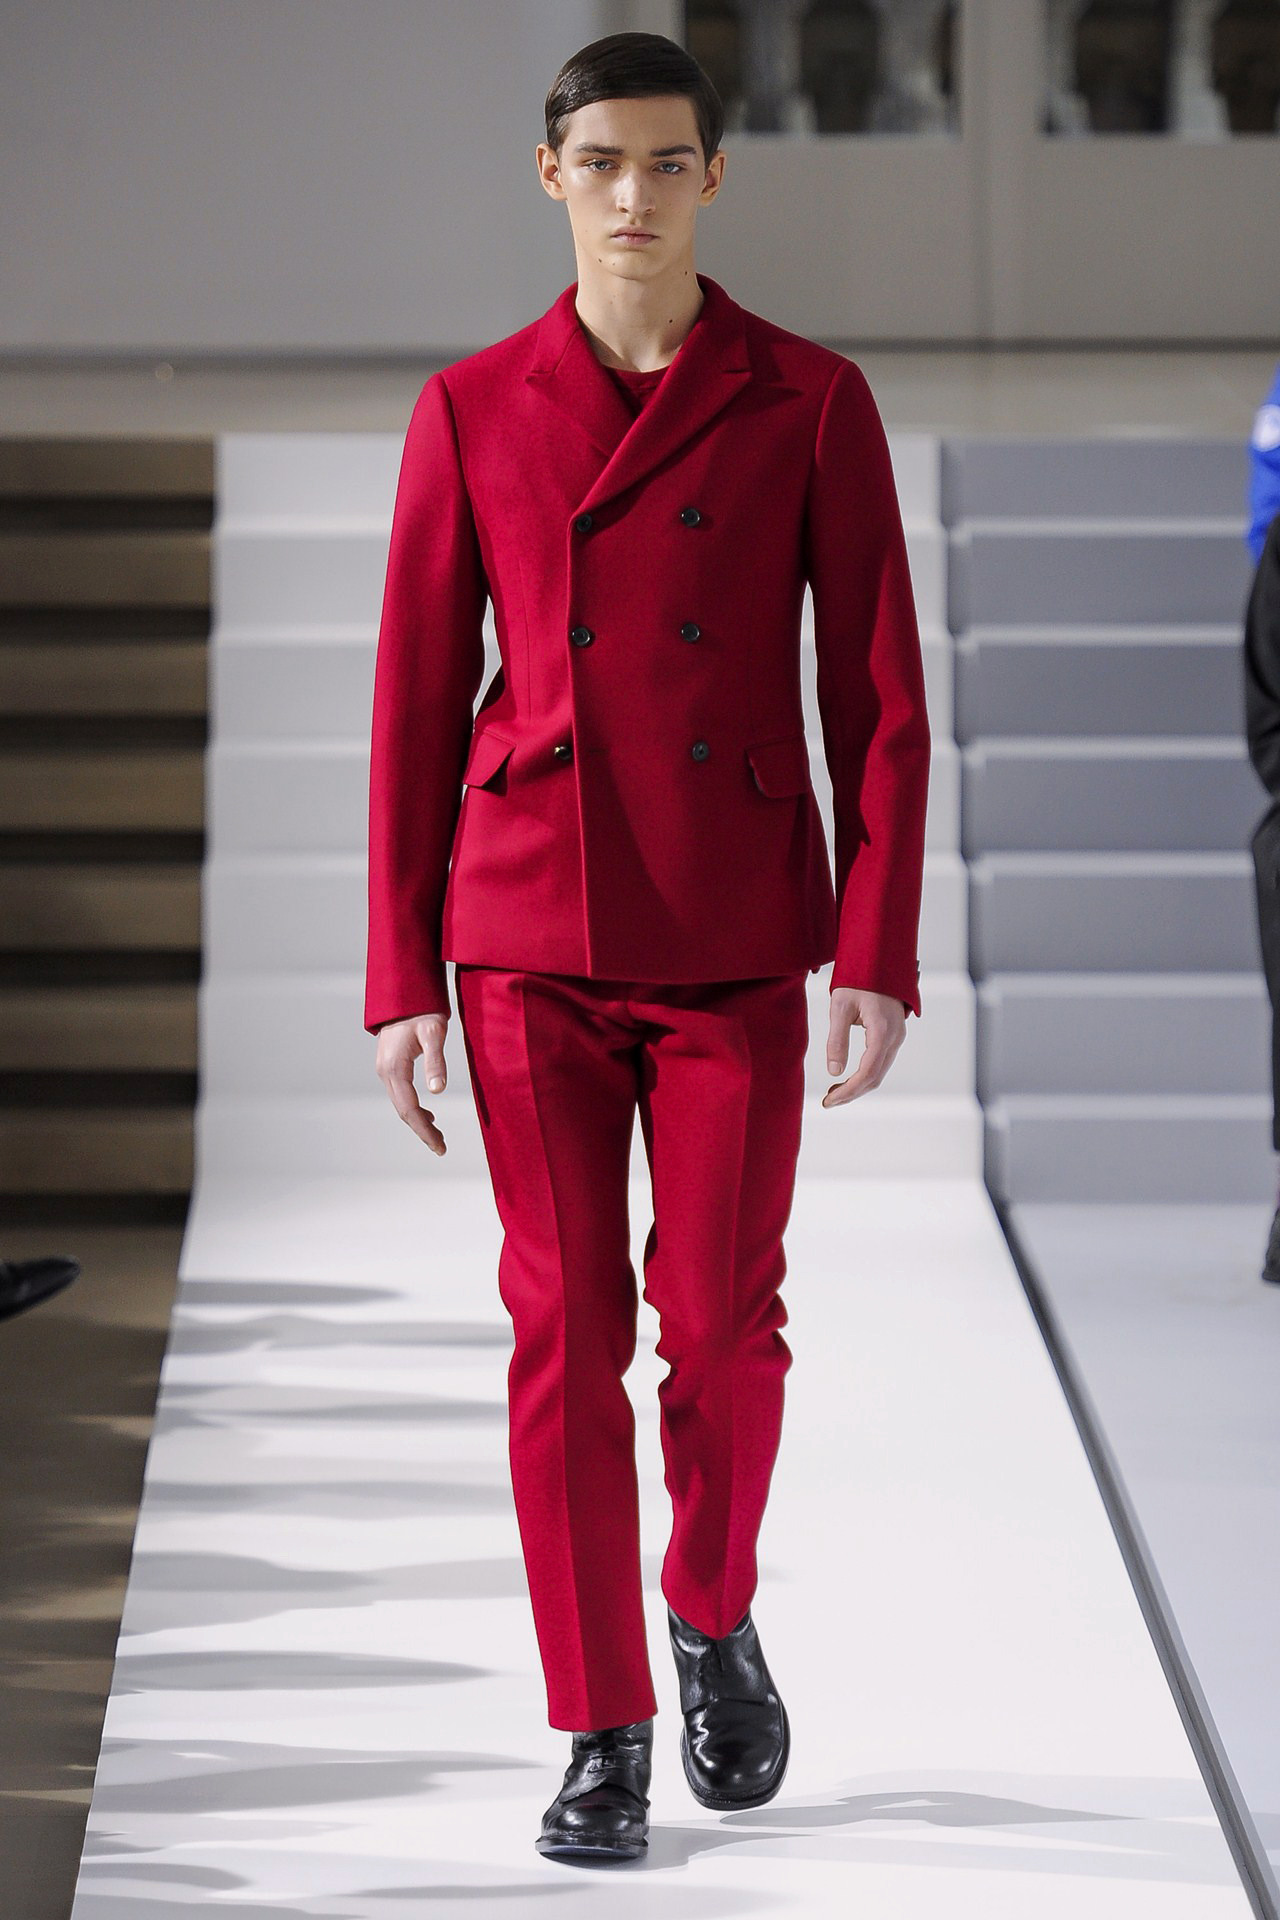 highqualitymenswear:  Jil Sander Menswear Fall/Winter 2013-14